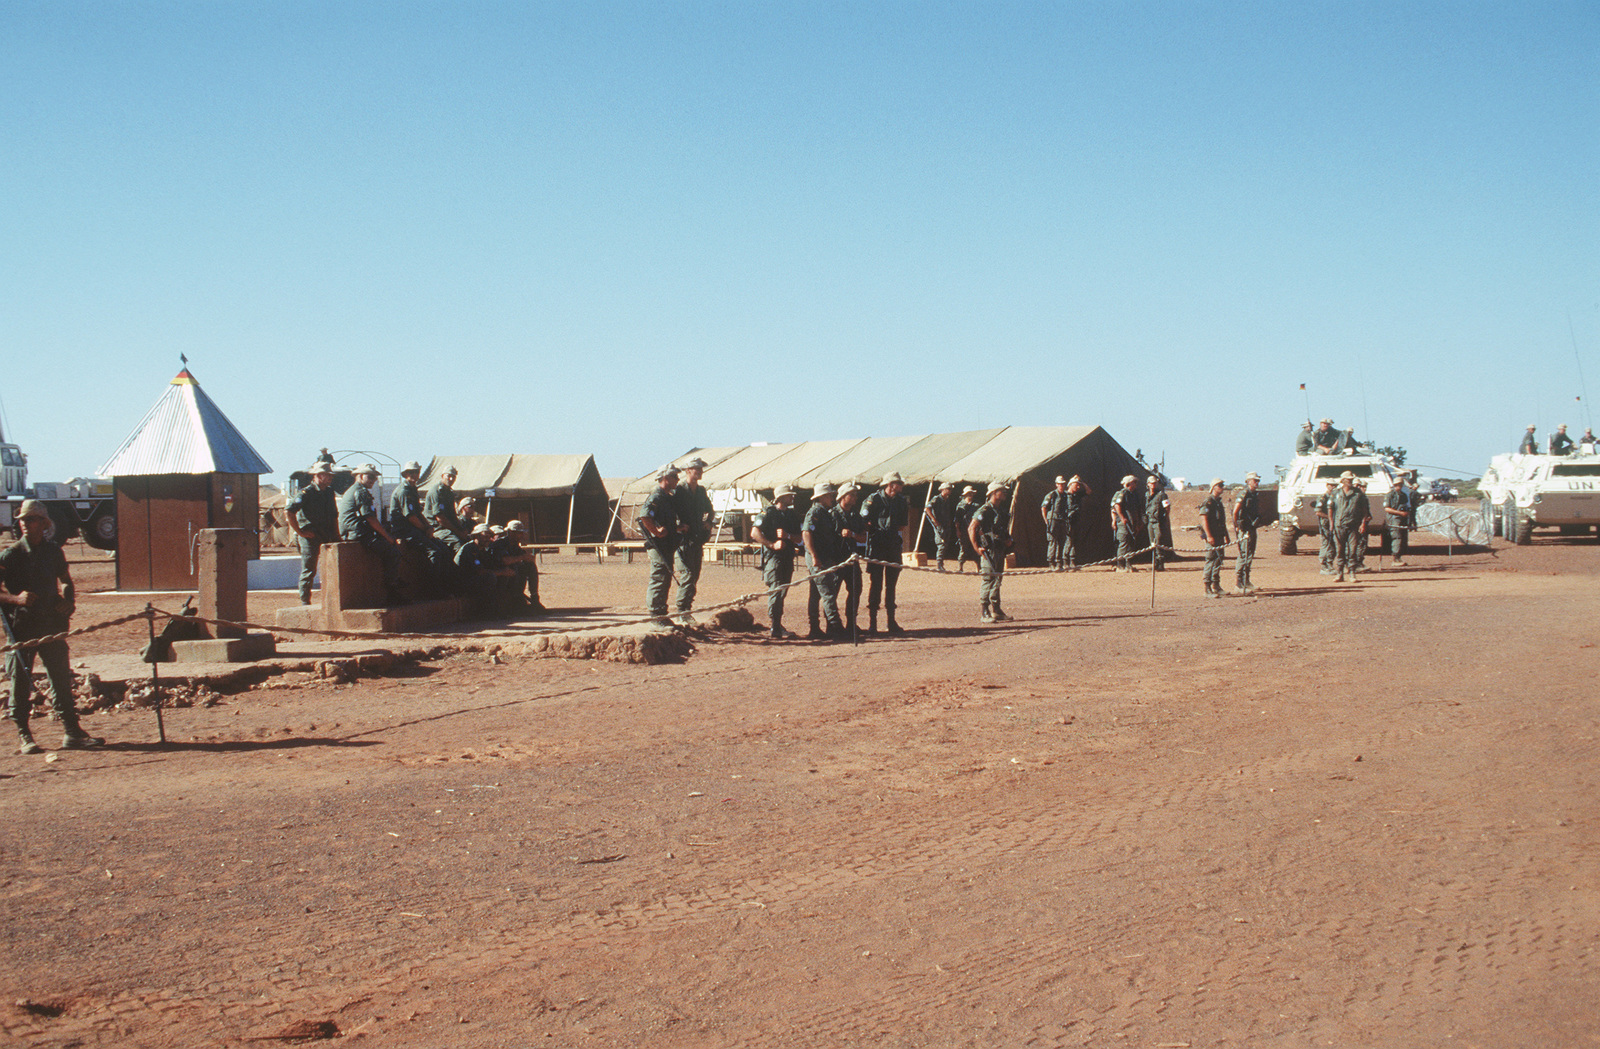 The German Army prepares for a well dedication ceremony; their 2nd Contingent dug the well during UNOSOM II. German Defense Minister Voelker Ruehe was on hand to dedicate the well